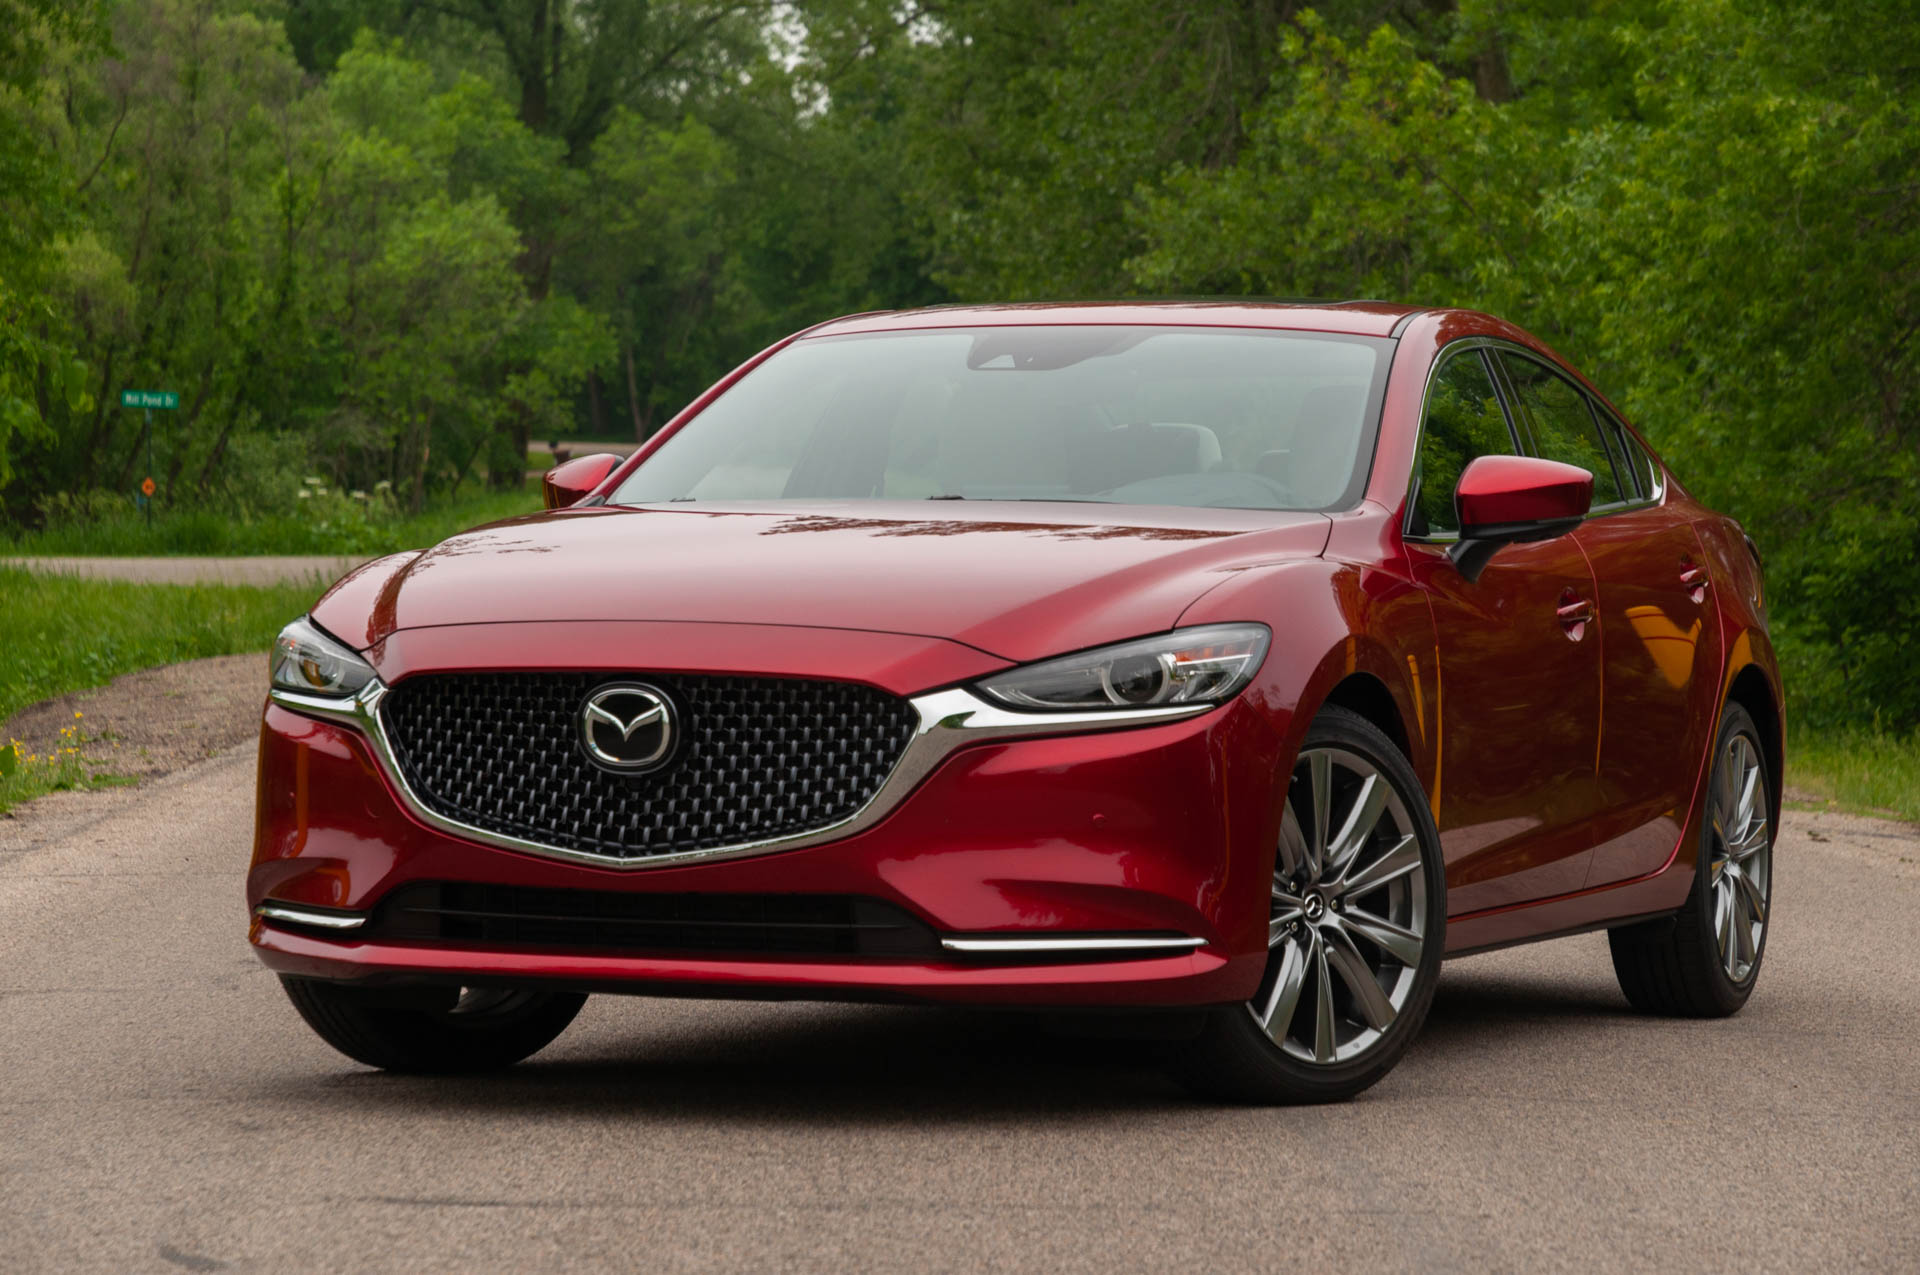 Review Update The 2020 Mazda 6 Signature Straddles The Divide Between Mainstream And Premium